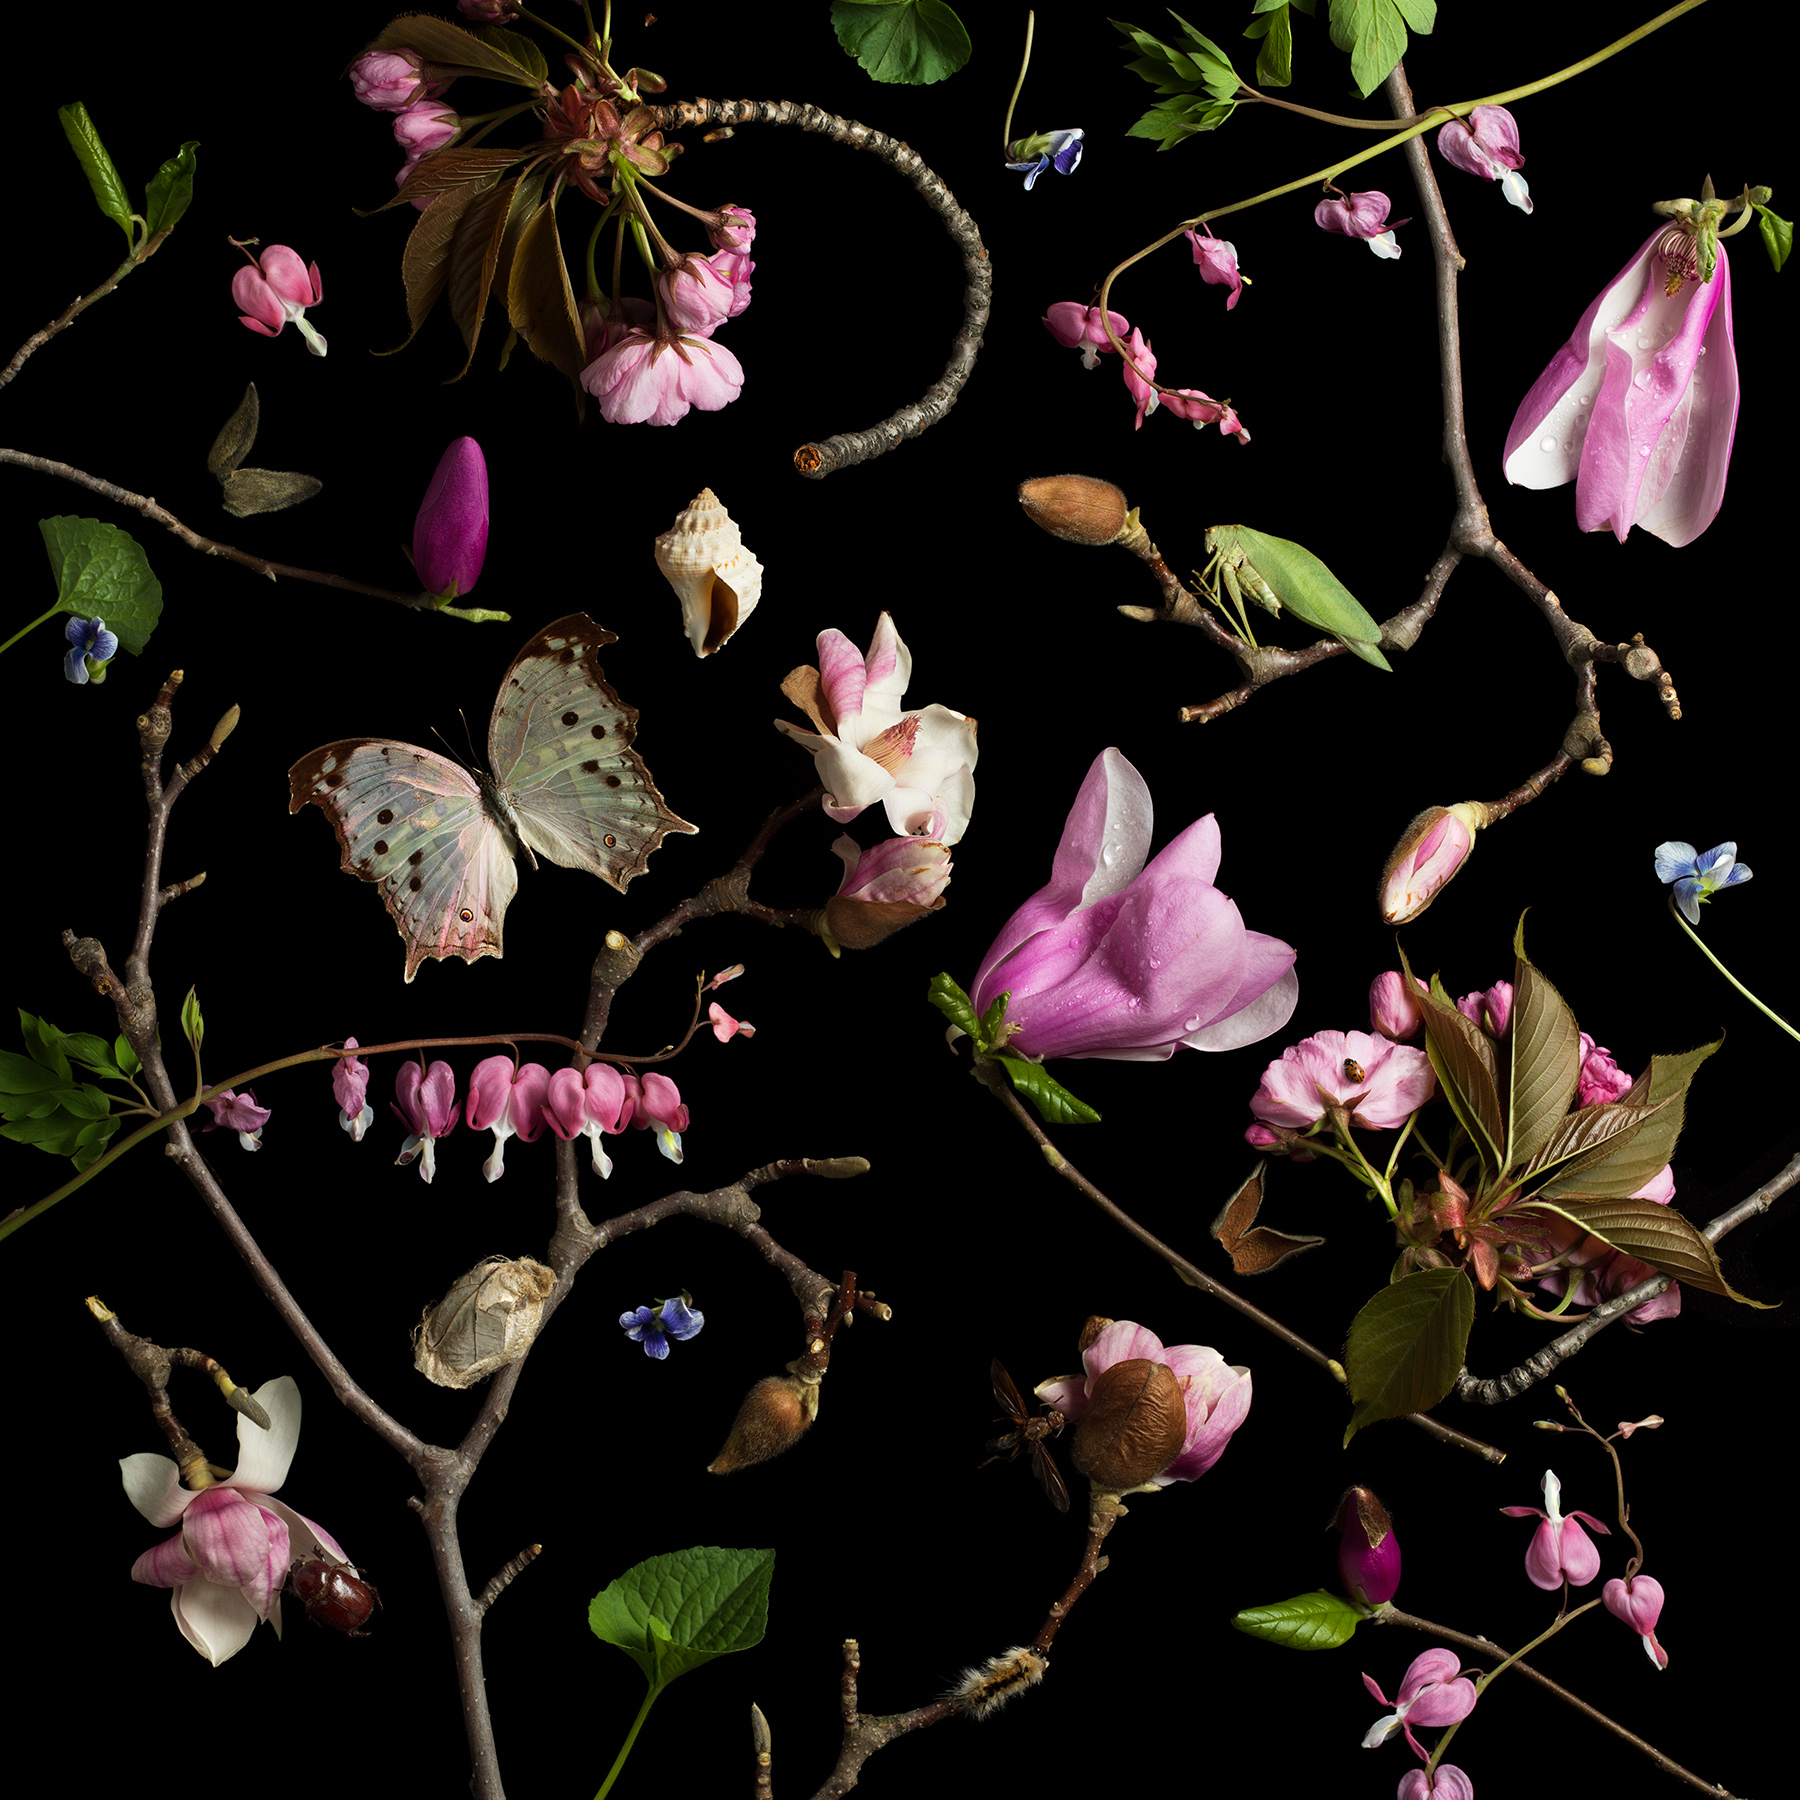 Botanical III (Bleeding Hearts and Magnolias), 2013